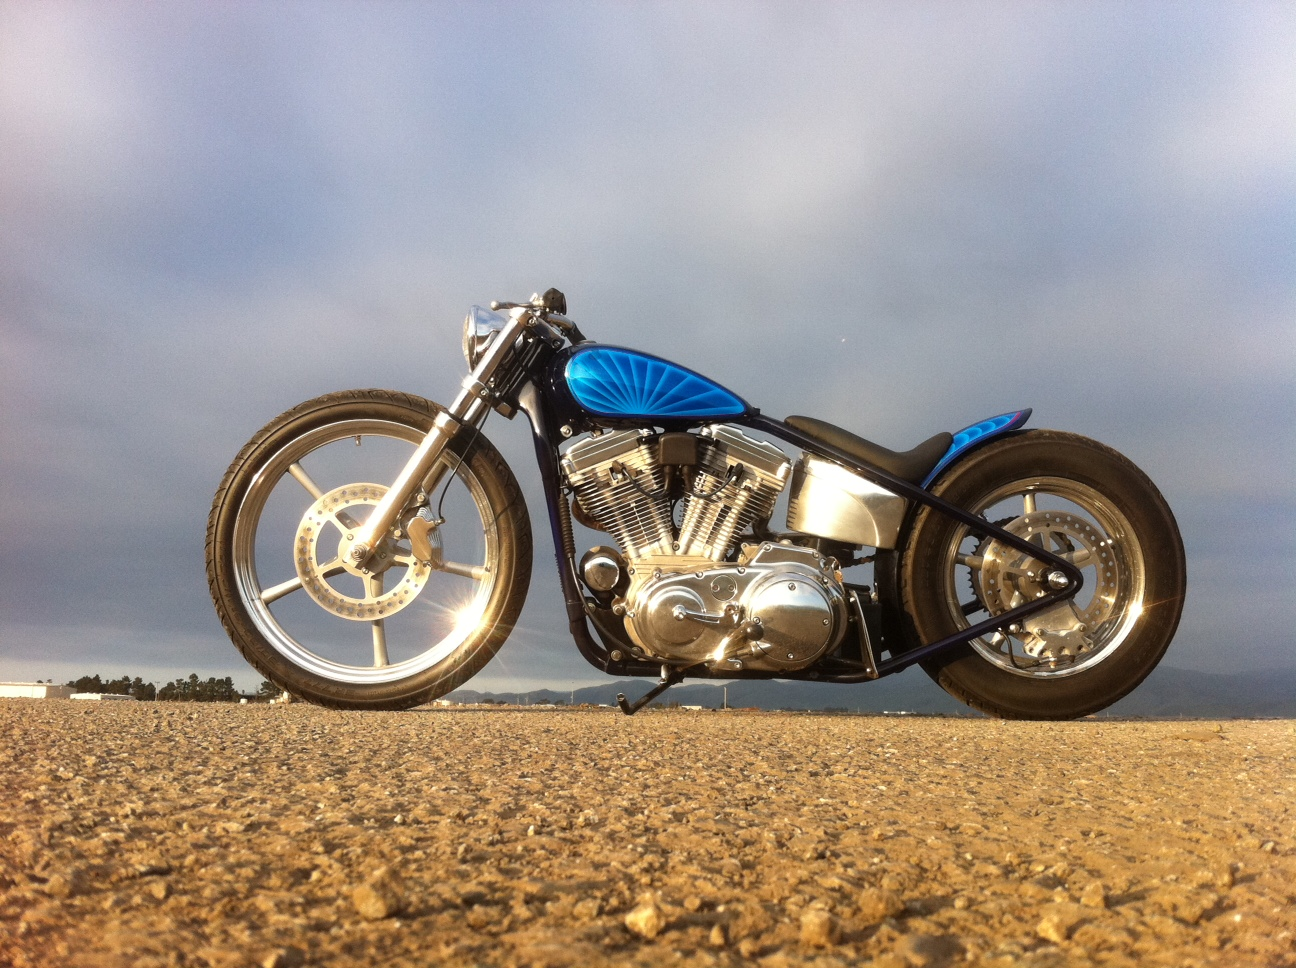 Gas Monkey Garage Motorcycles For Sale